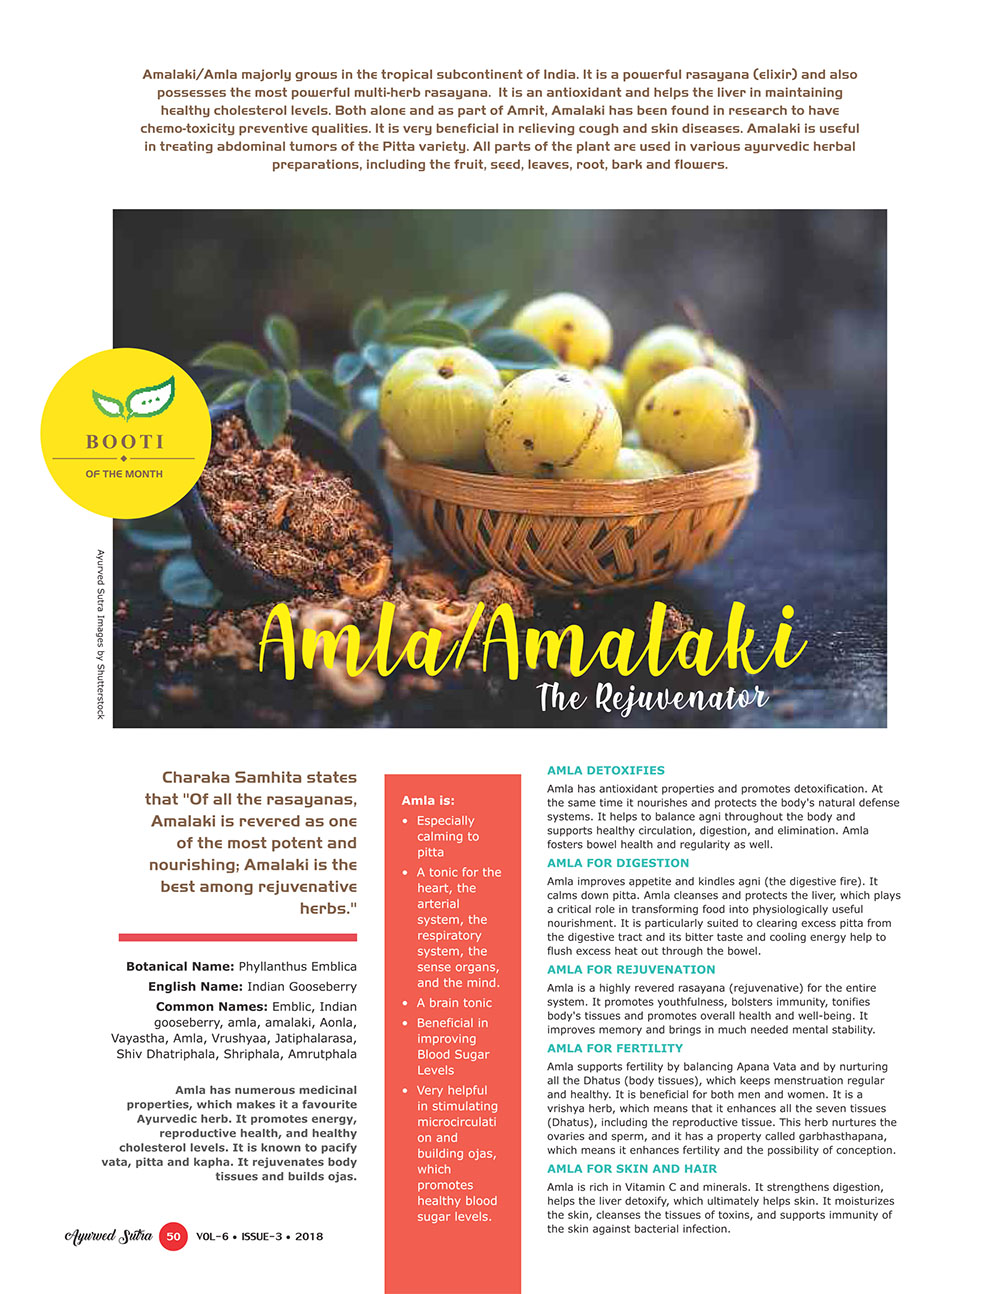 Ayurvedsutra Vol 06 issue 04 52 - Booti OF THE Month  : Amla/Amalaki - The Rejuvenator